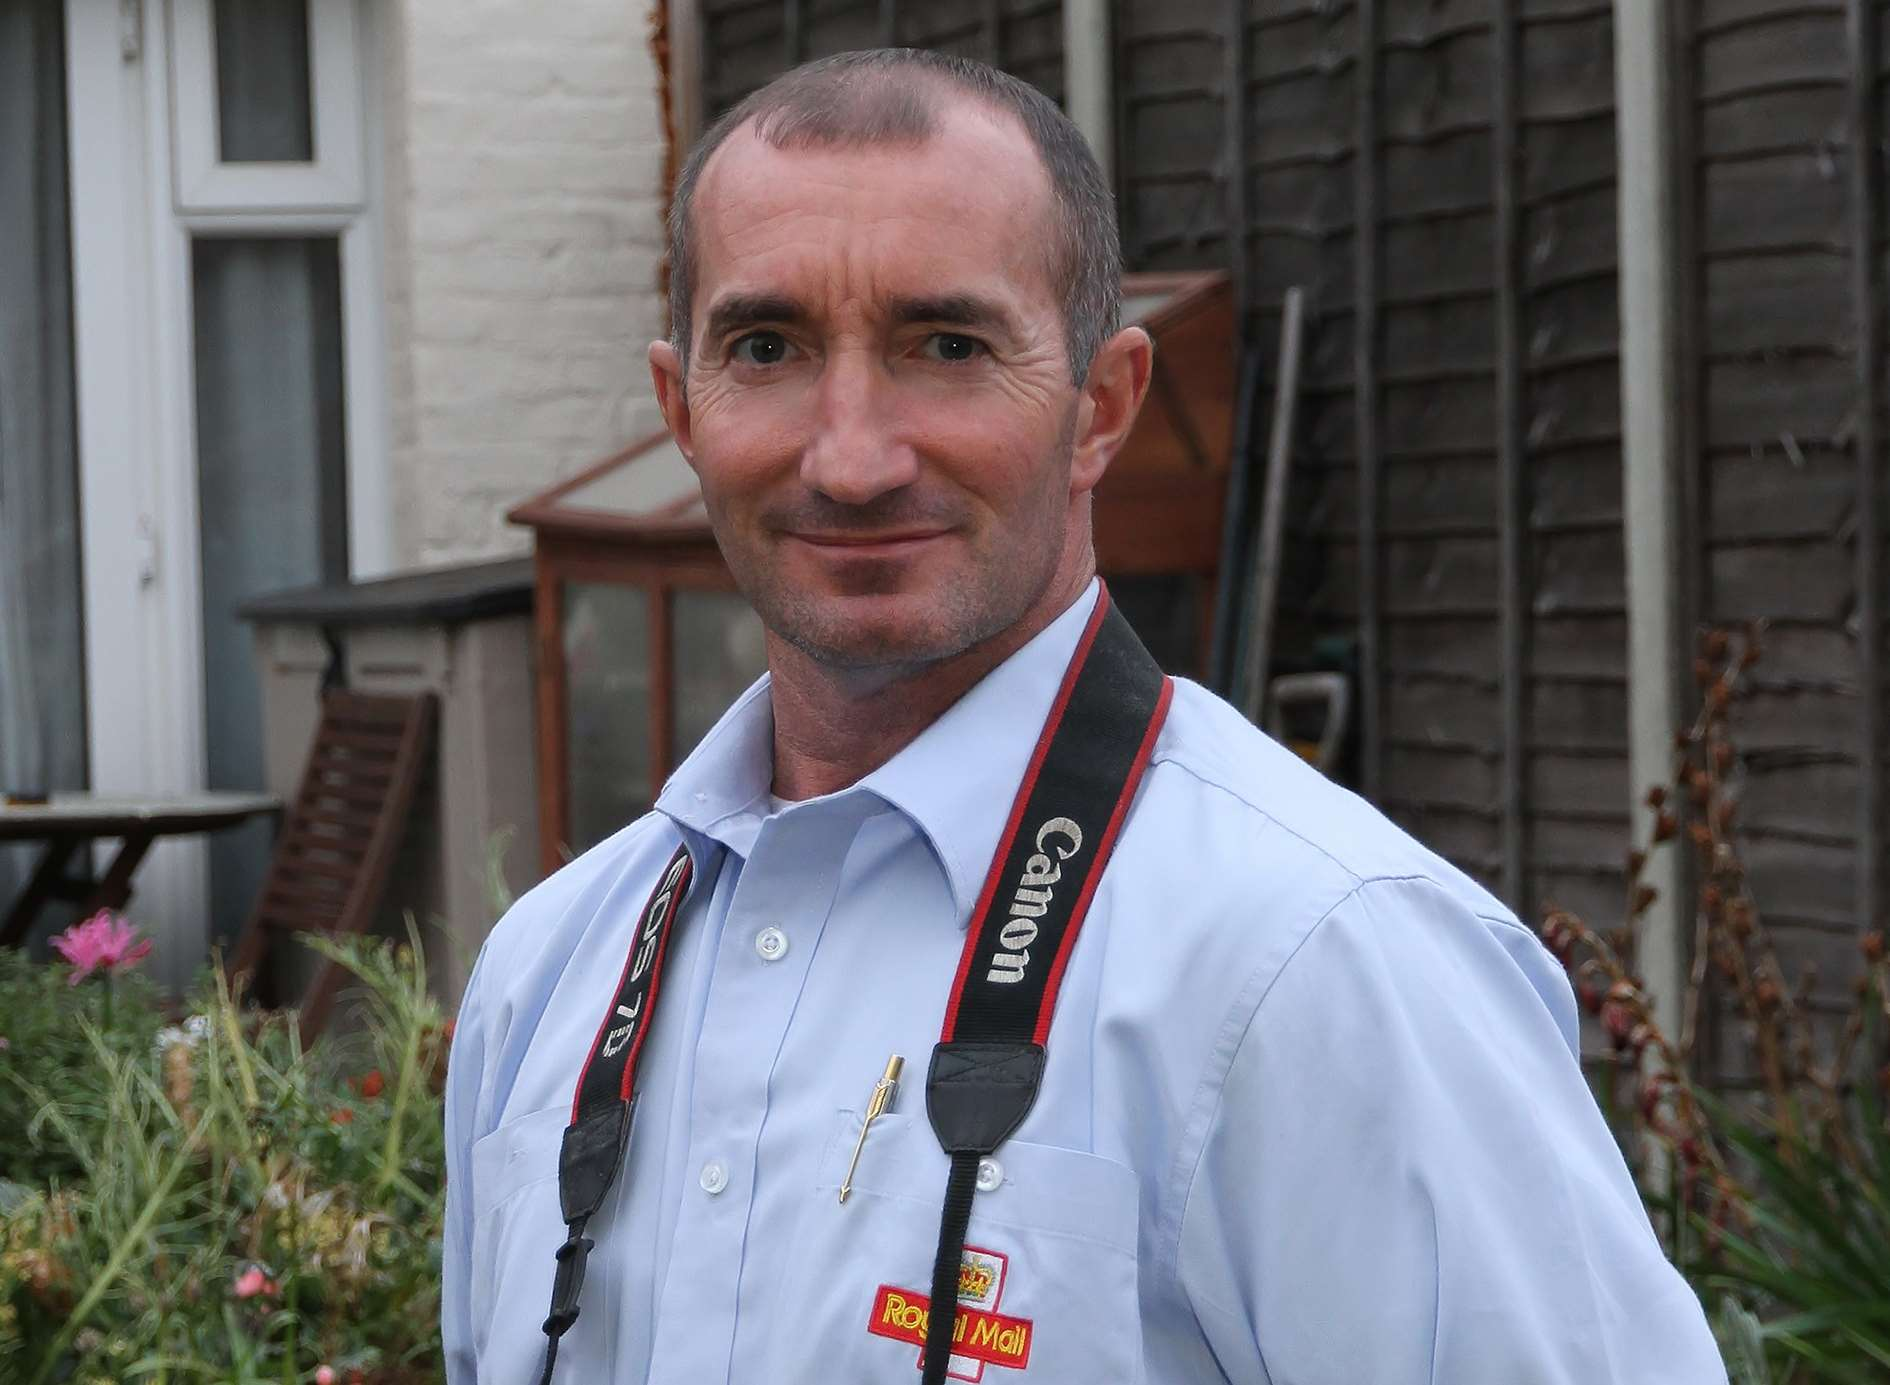 Jason Steel has been a postman in Dartford for the last 28 years